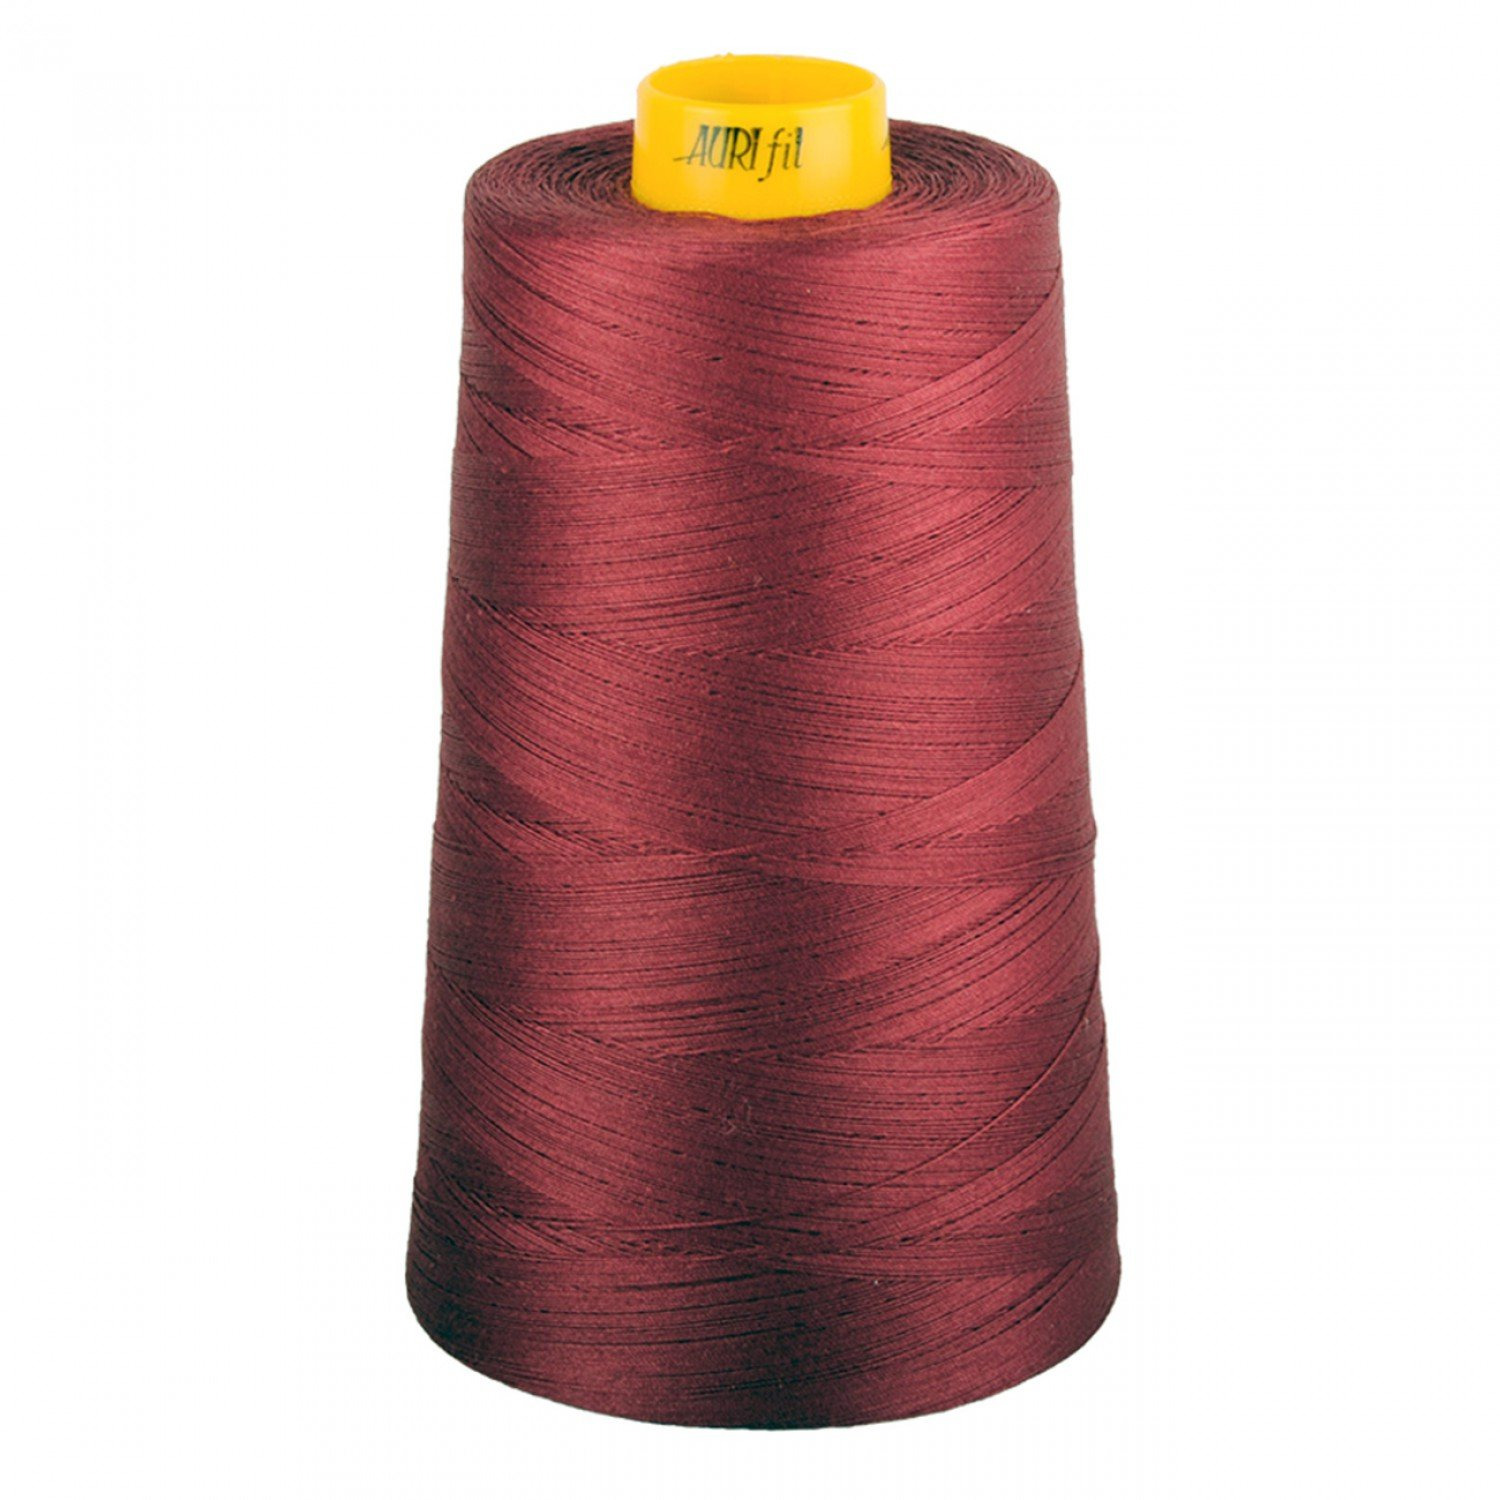 Aurifil Cotton 3-ply Longarm Thread 40wt 3280yds Burgundy